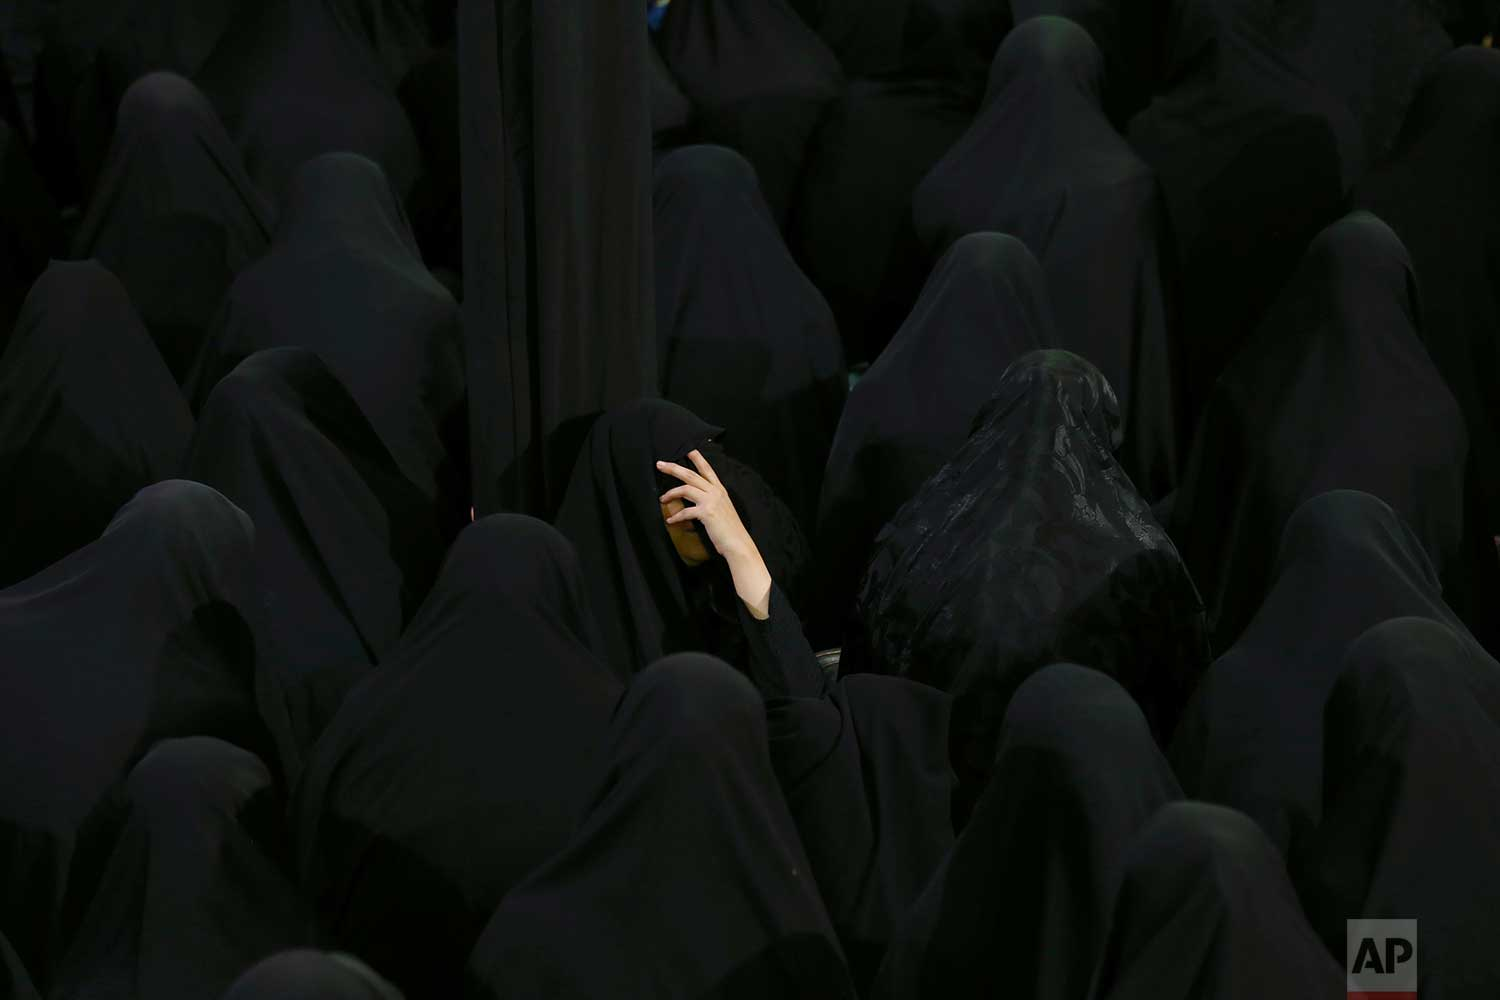 Muslim Shiite women mourn during the holy day of Ashoura, at the Sadat Akhavi Mosque in Tehran, Iran, Thursday, Sept 20, 2018. Ashoura is the annual Shiite commemoration of the death of Imam Hussein, the grandson of the Prophet Muhammad, at the Battle of Karbala in present-day Iraq in the 7th century. (AP Photo/Ebrahim Noroozi)